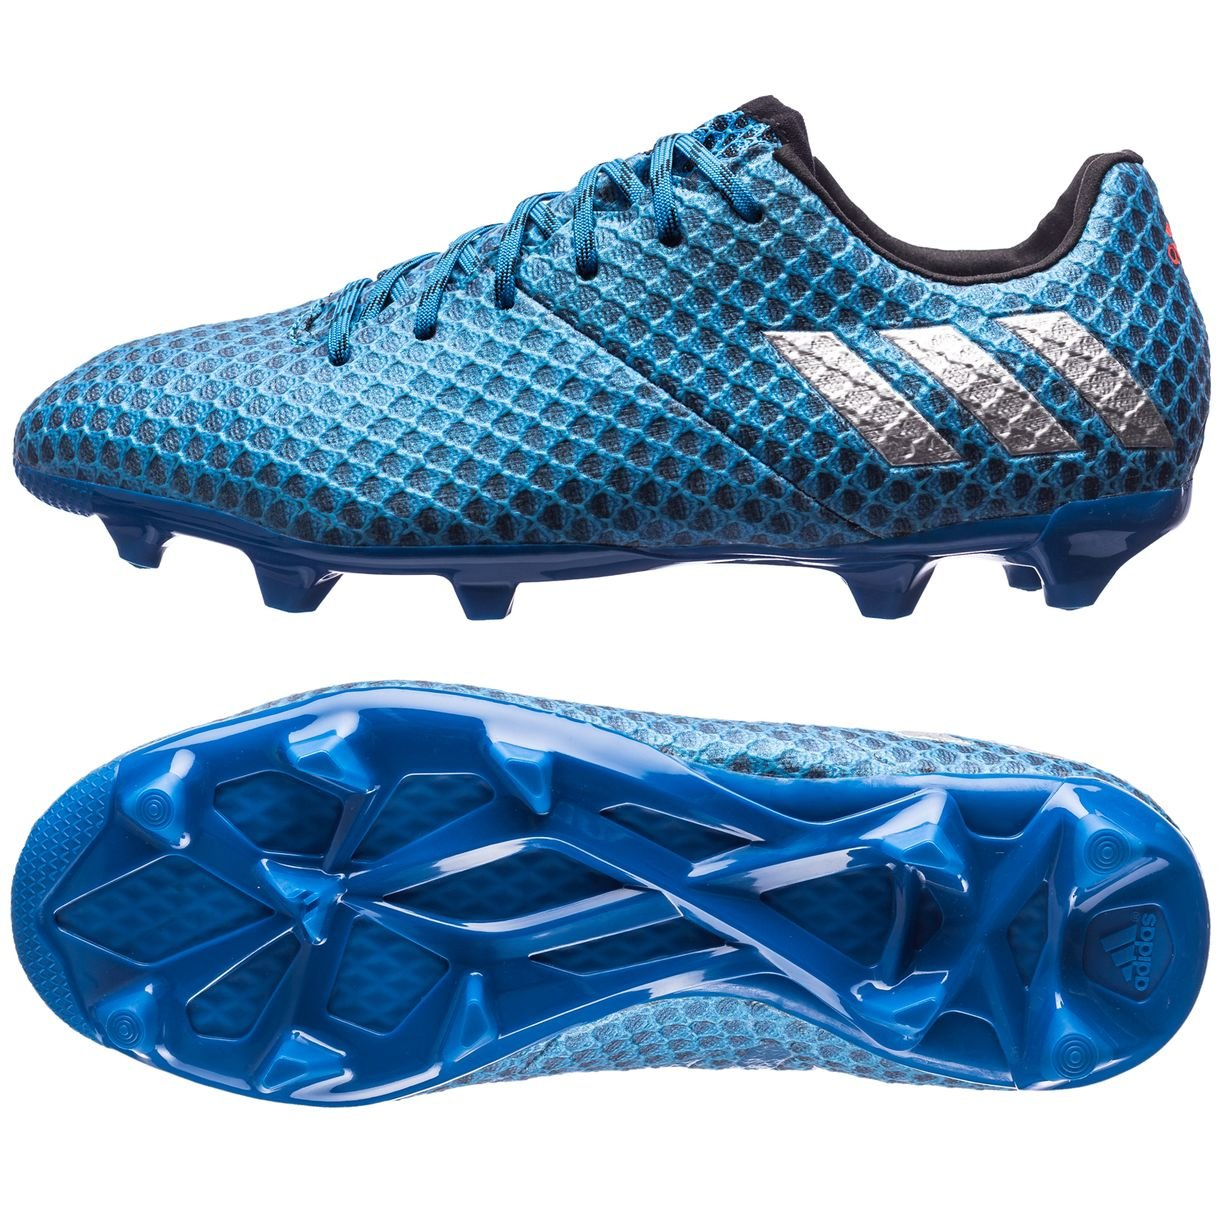 Adidas MESSI 16.1 Youth Firm Ground Cleats [SHOBLU] (6)